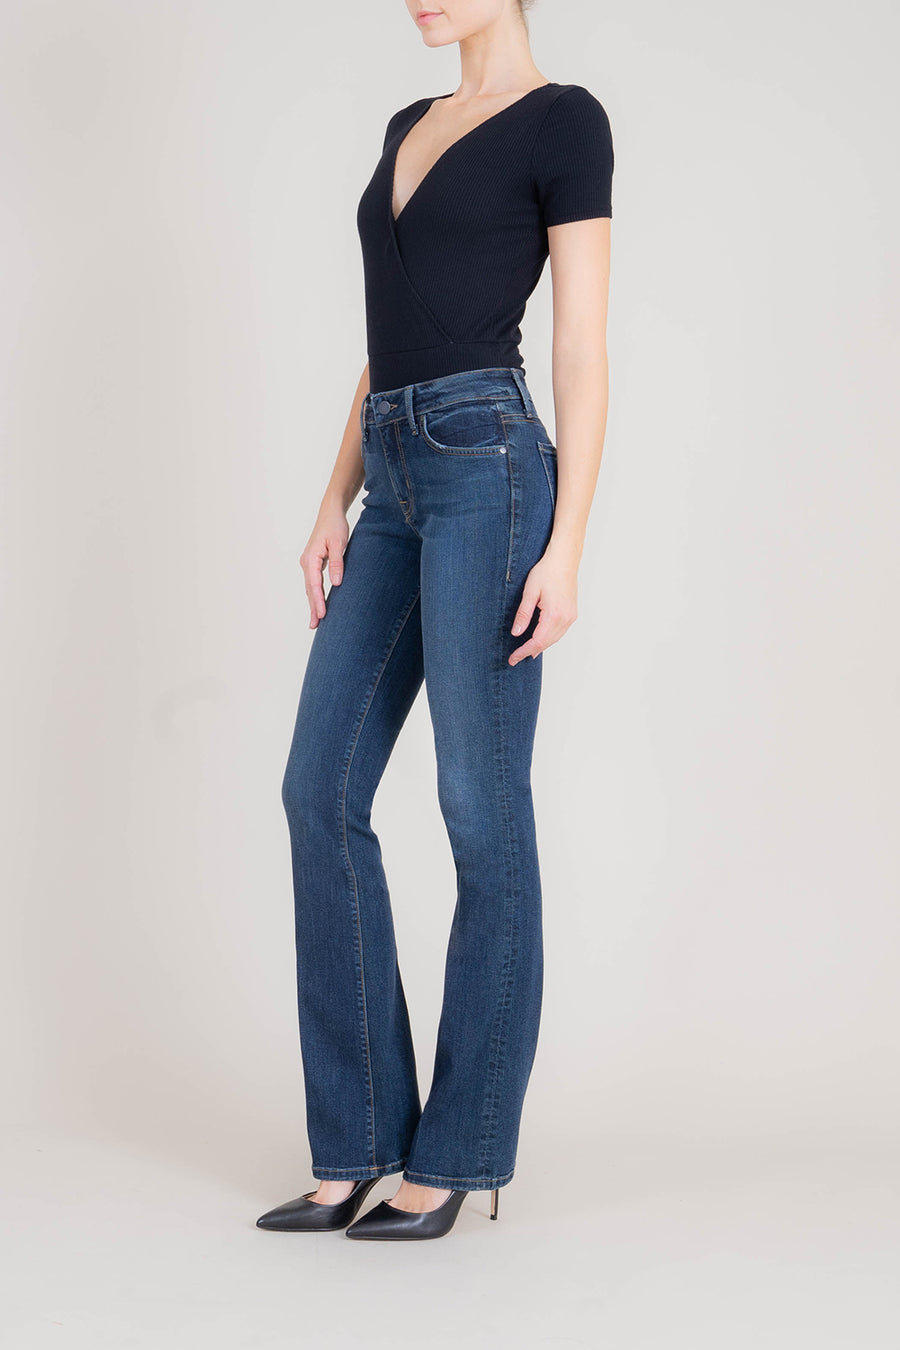 Sasha Midrise Mini Boot - level99jeans